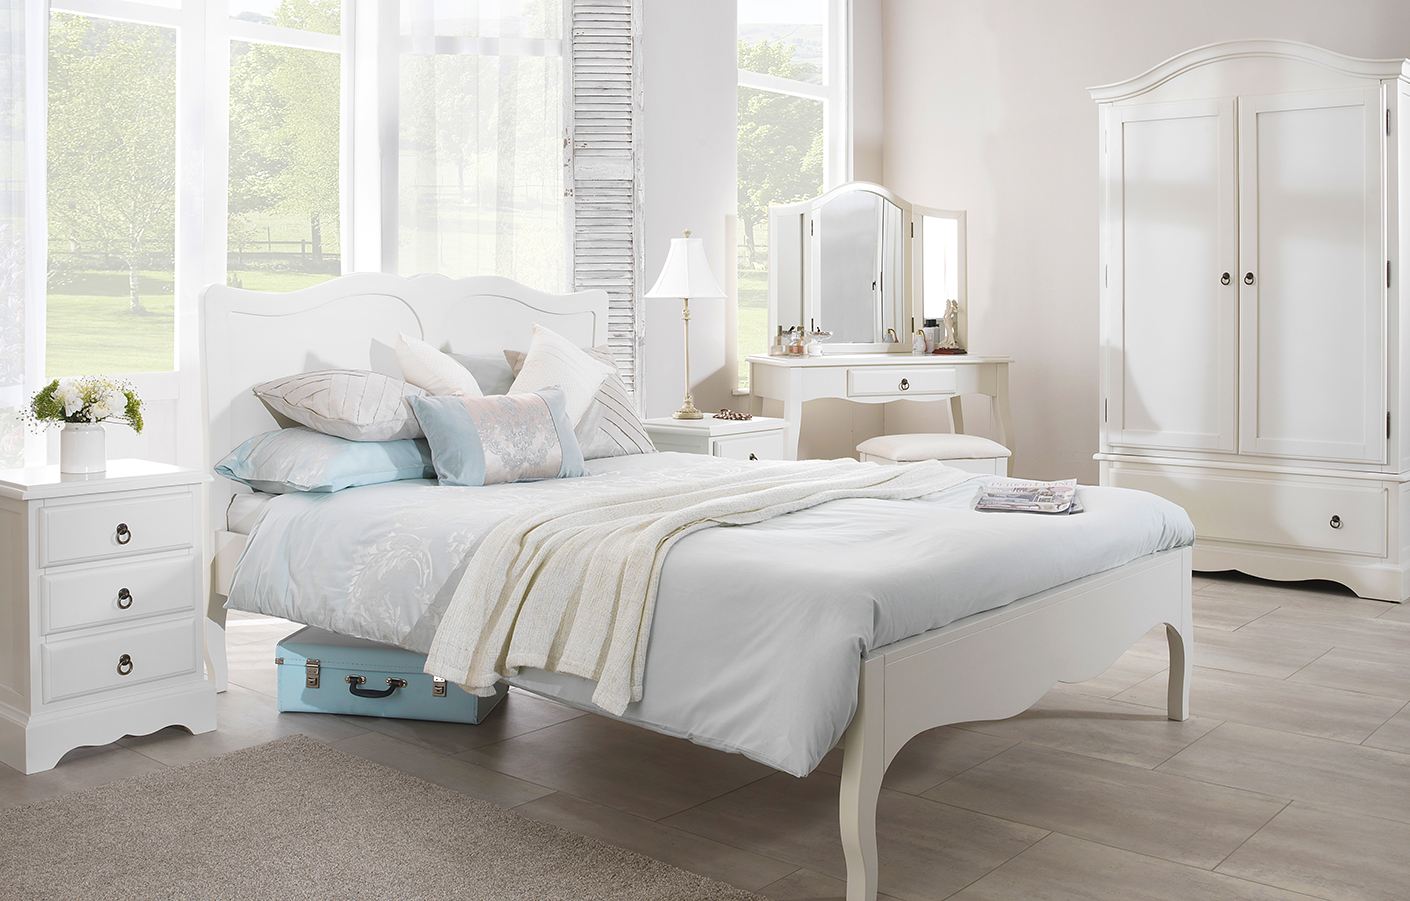 Romance-bedroom-furniture610x390